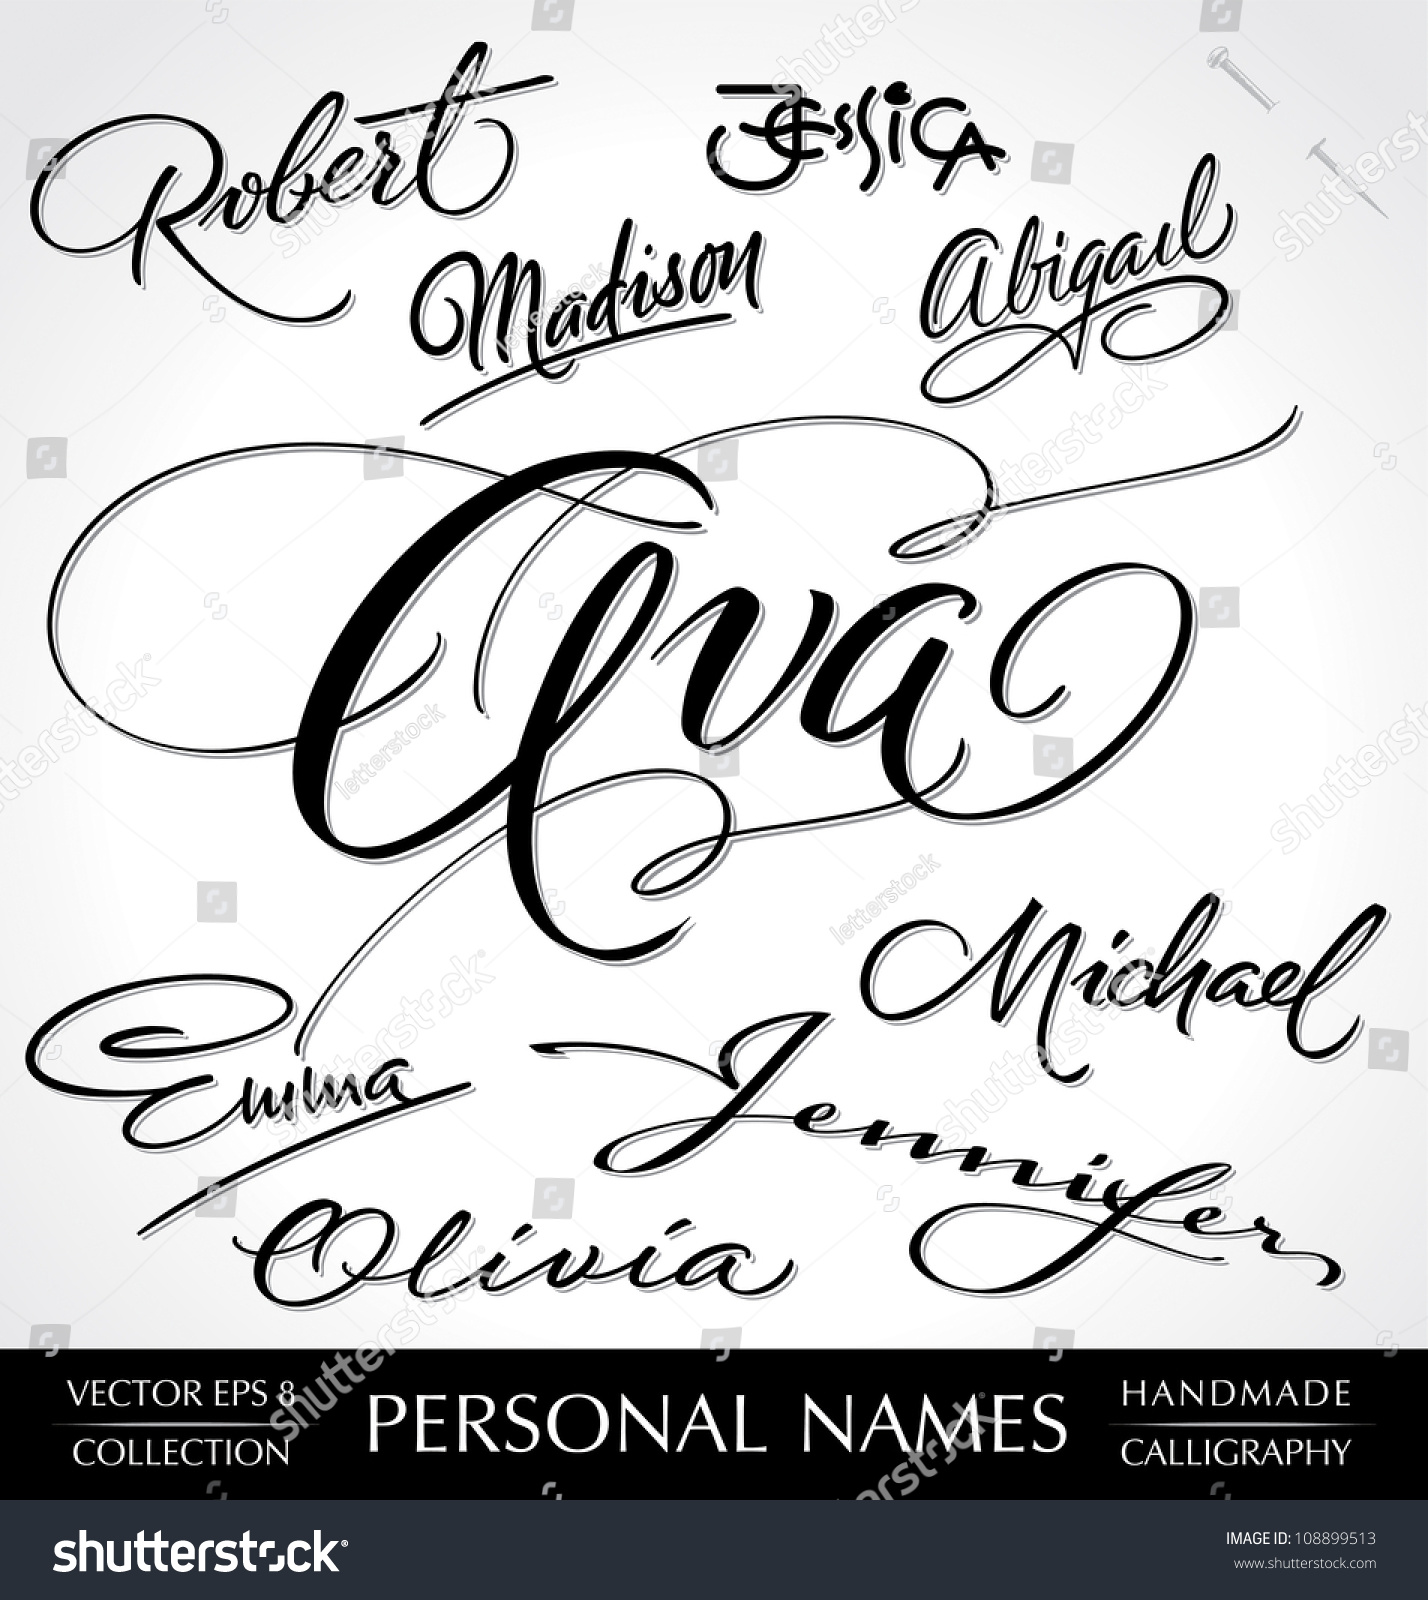 Hand Lettering Set Of 9 Common Personal Names Handmade